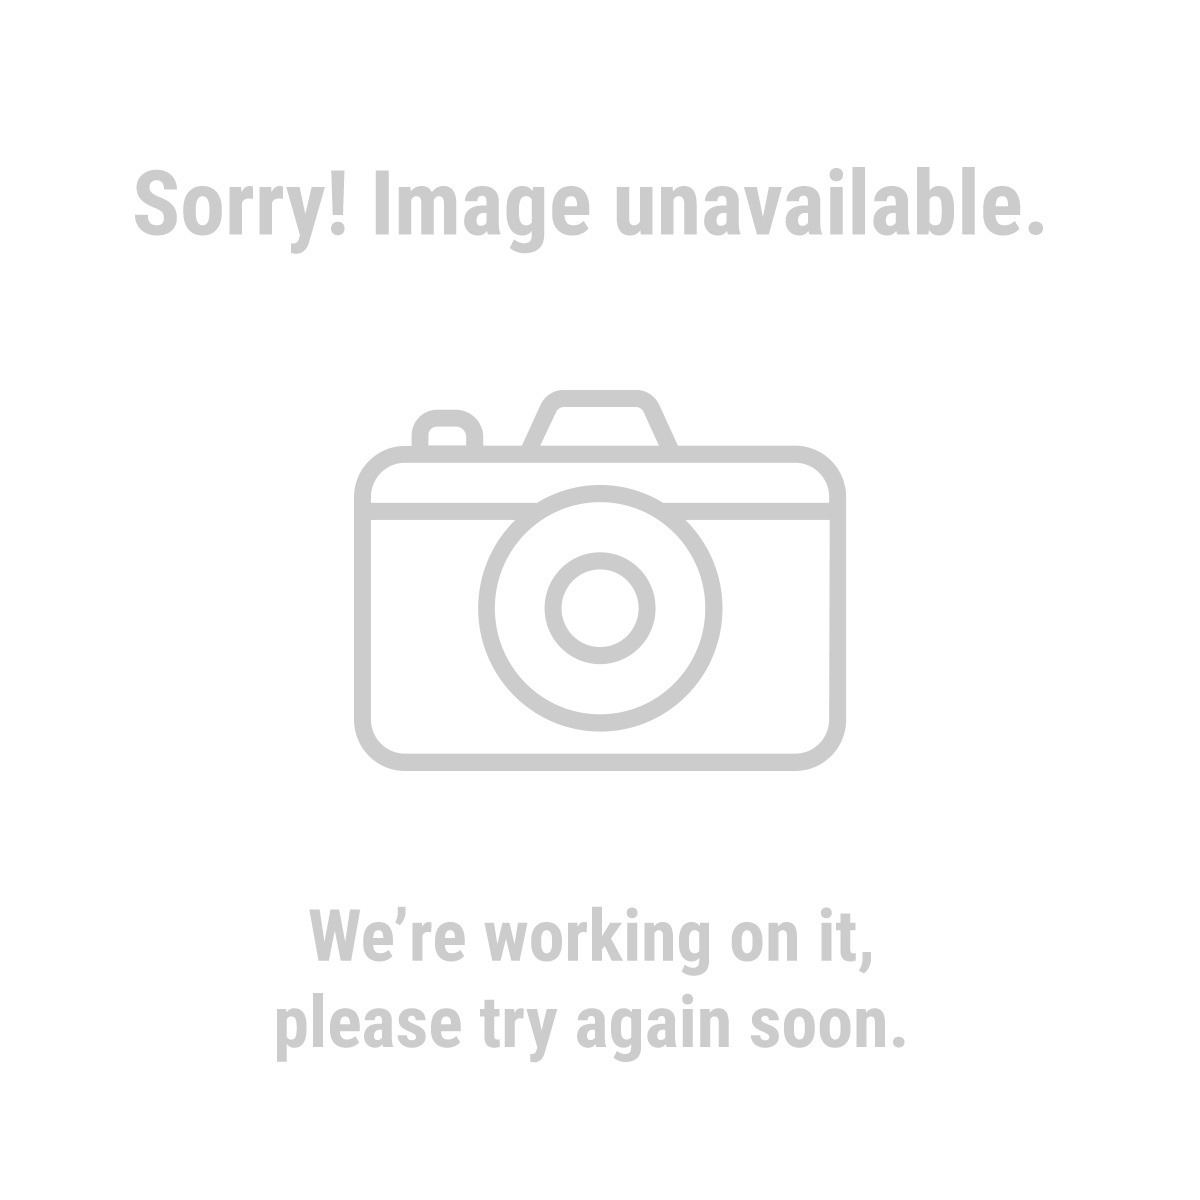 Central Pneumatic 68192 5 Piece Industrial Series Air Tool Quick Coupler and Plug Set